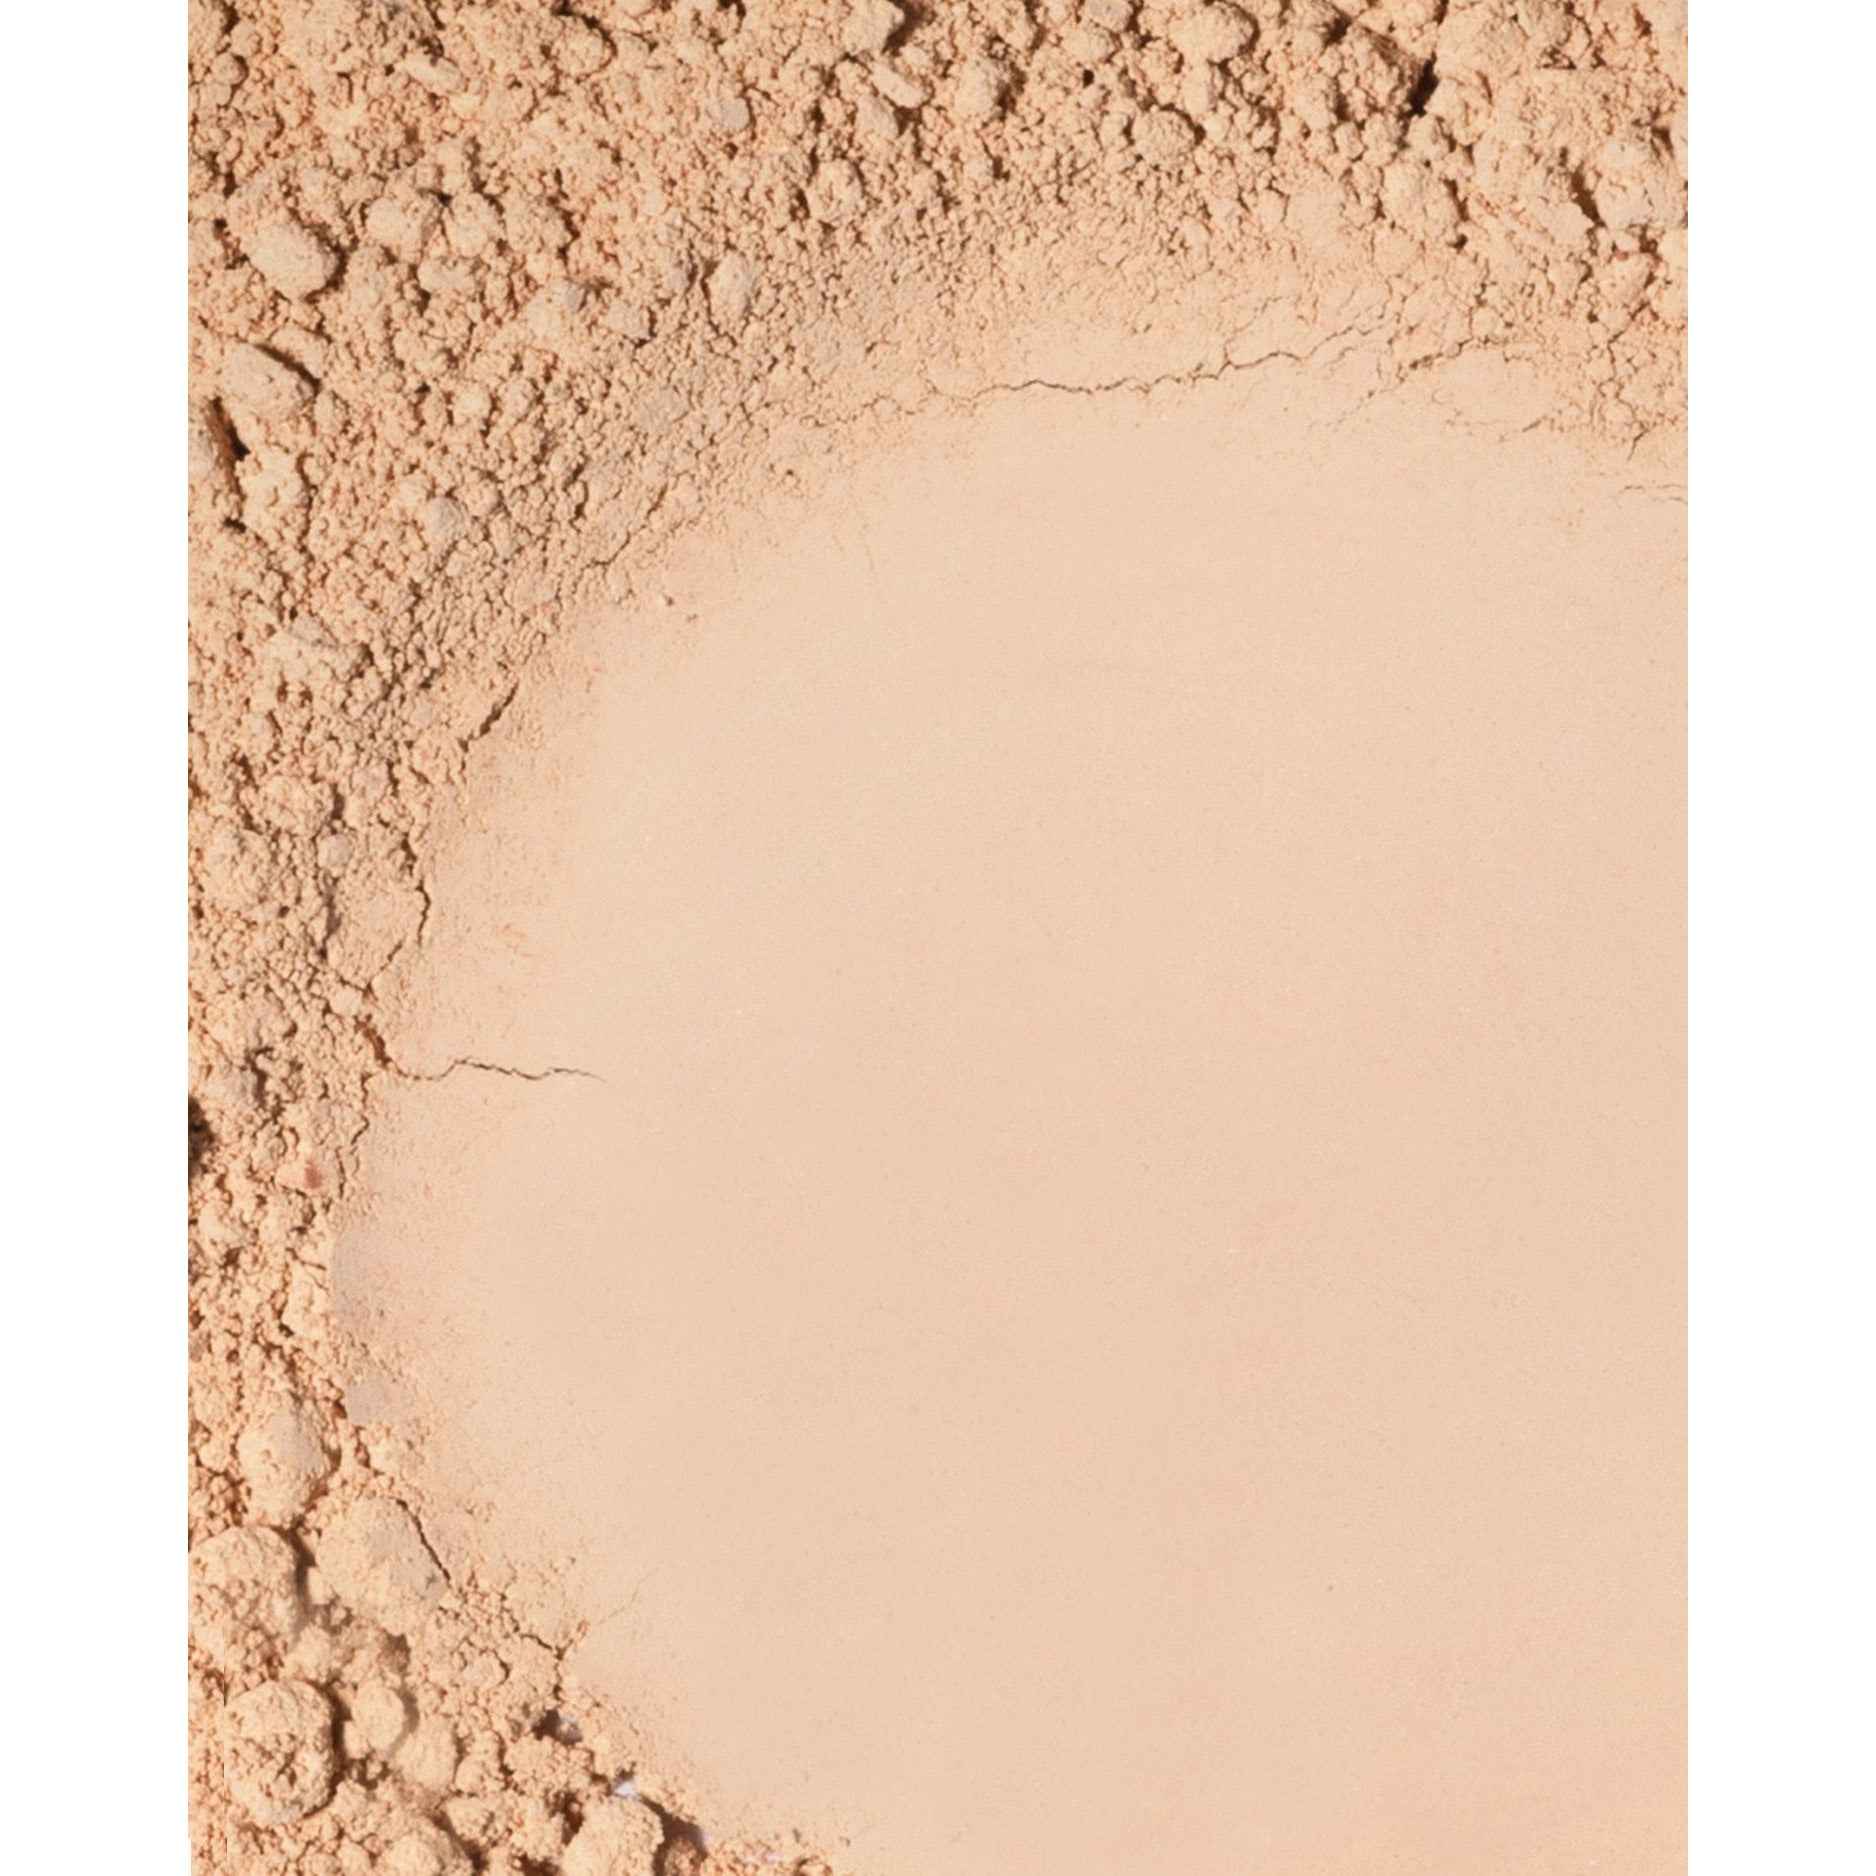 Honest - Omiana Loose Powder Mineral Foundation No Titanium Dioxide and No Mica